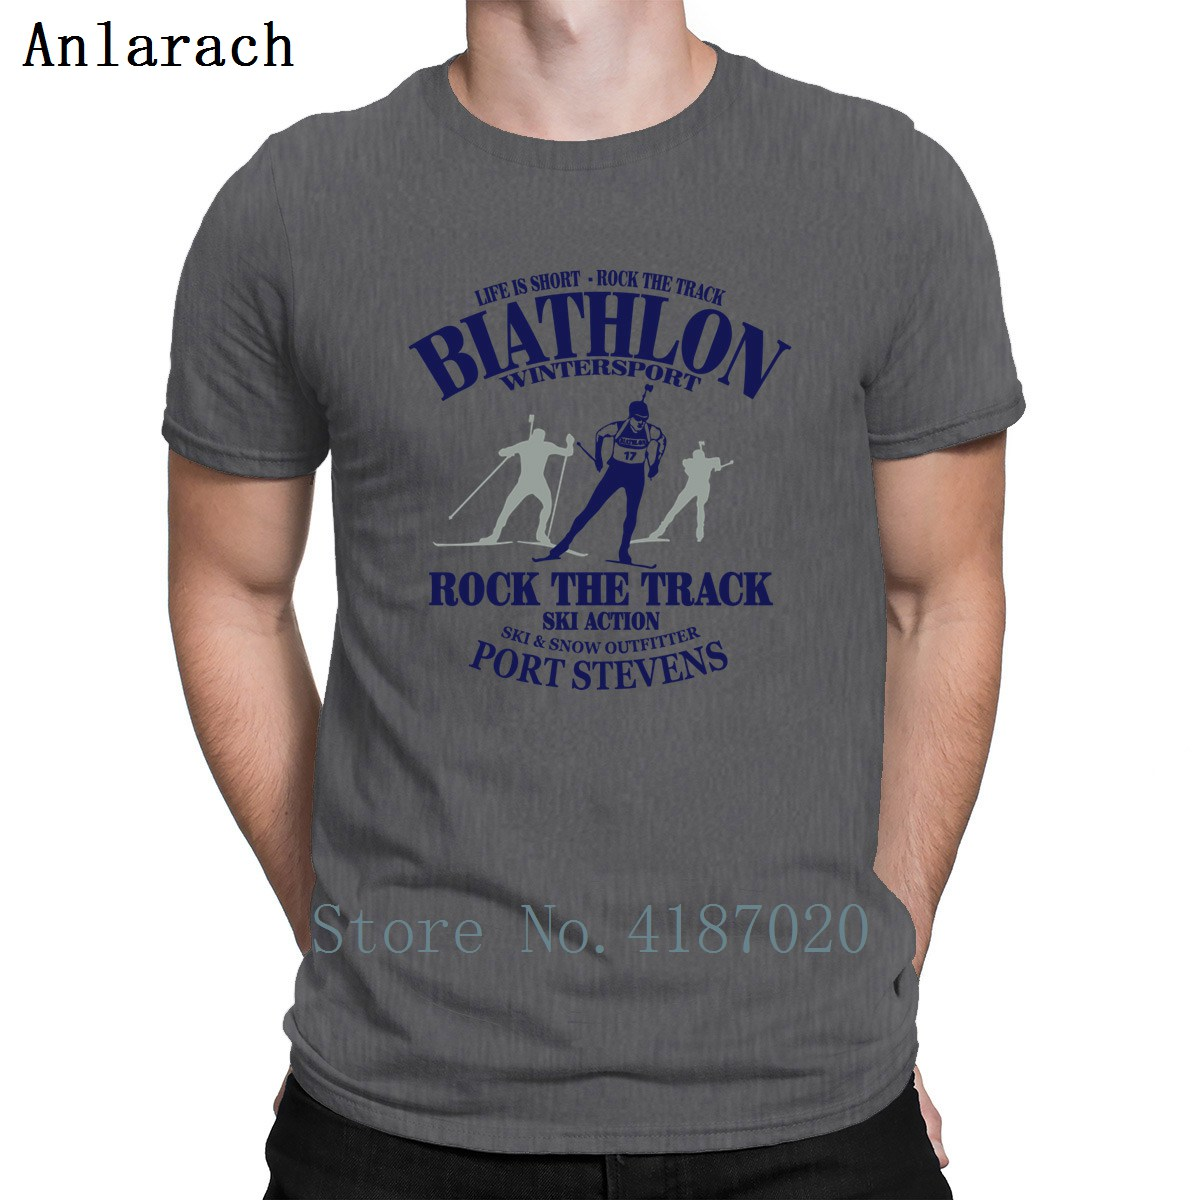 Biathlon T-Shirt Top Tee Plus Size Customized Unisex T Shirt For Men Best Natural Summer Style Anlarach Family